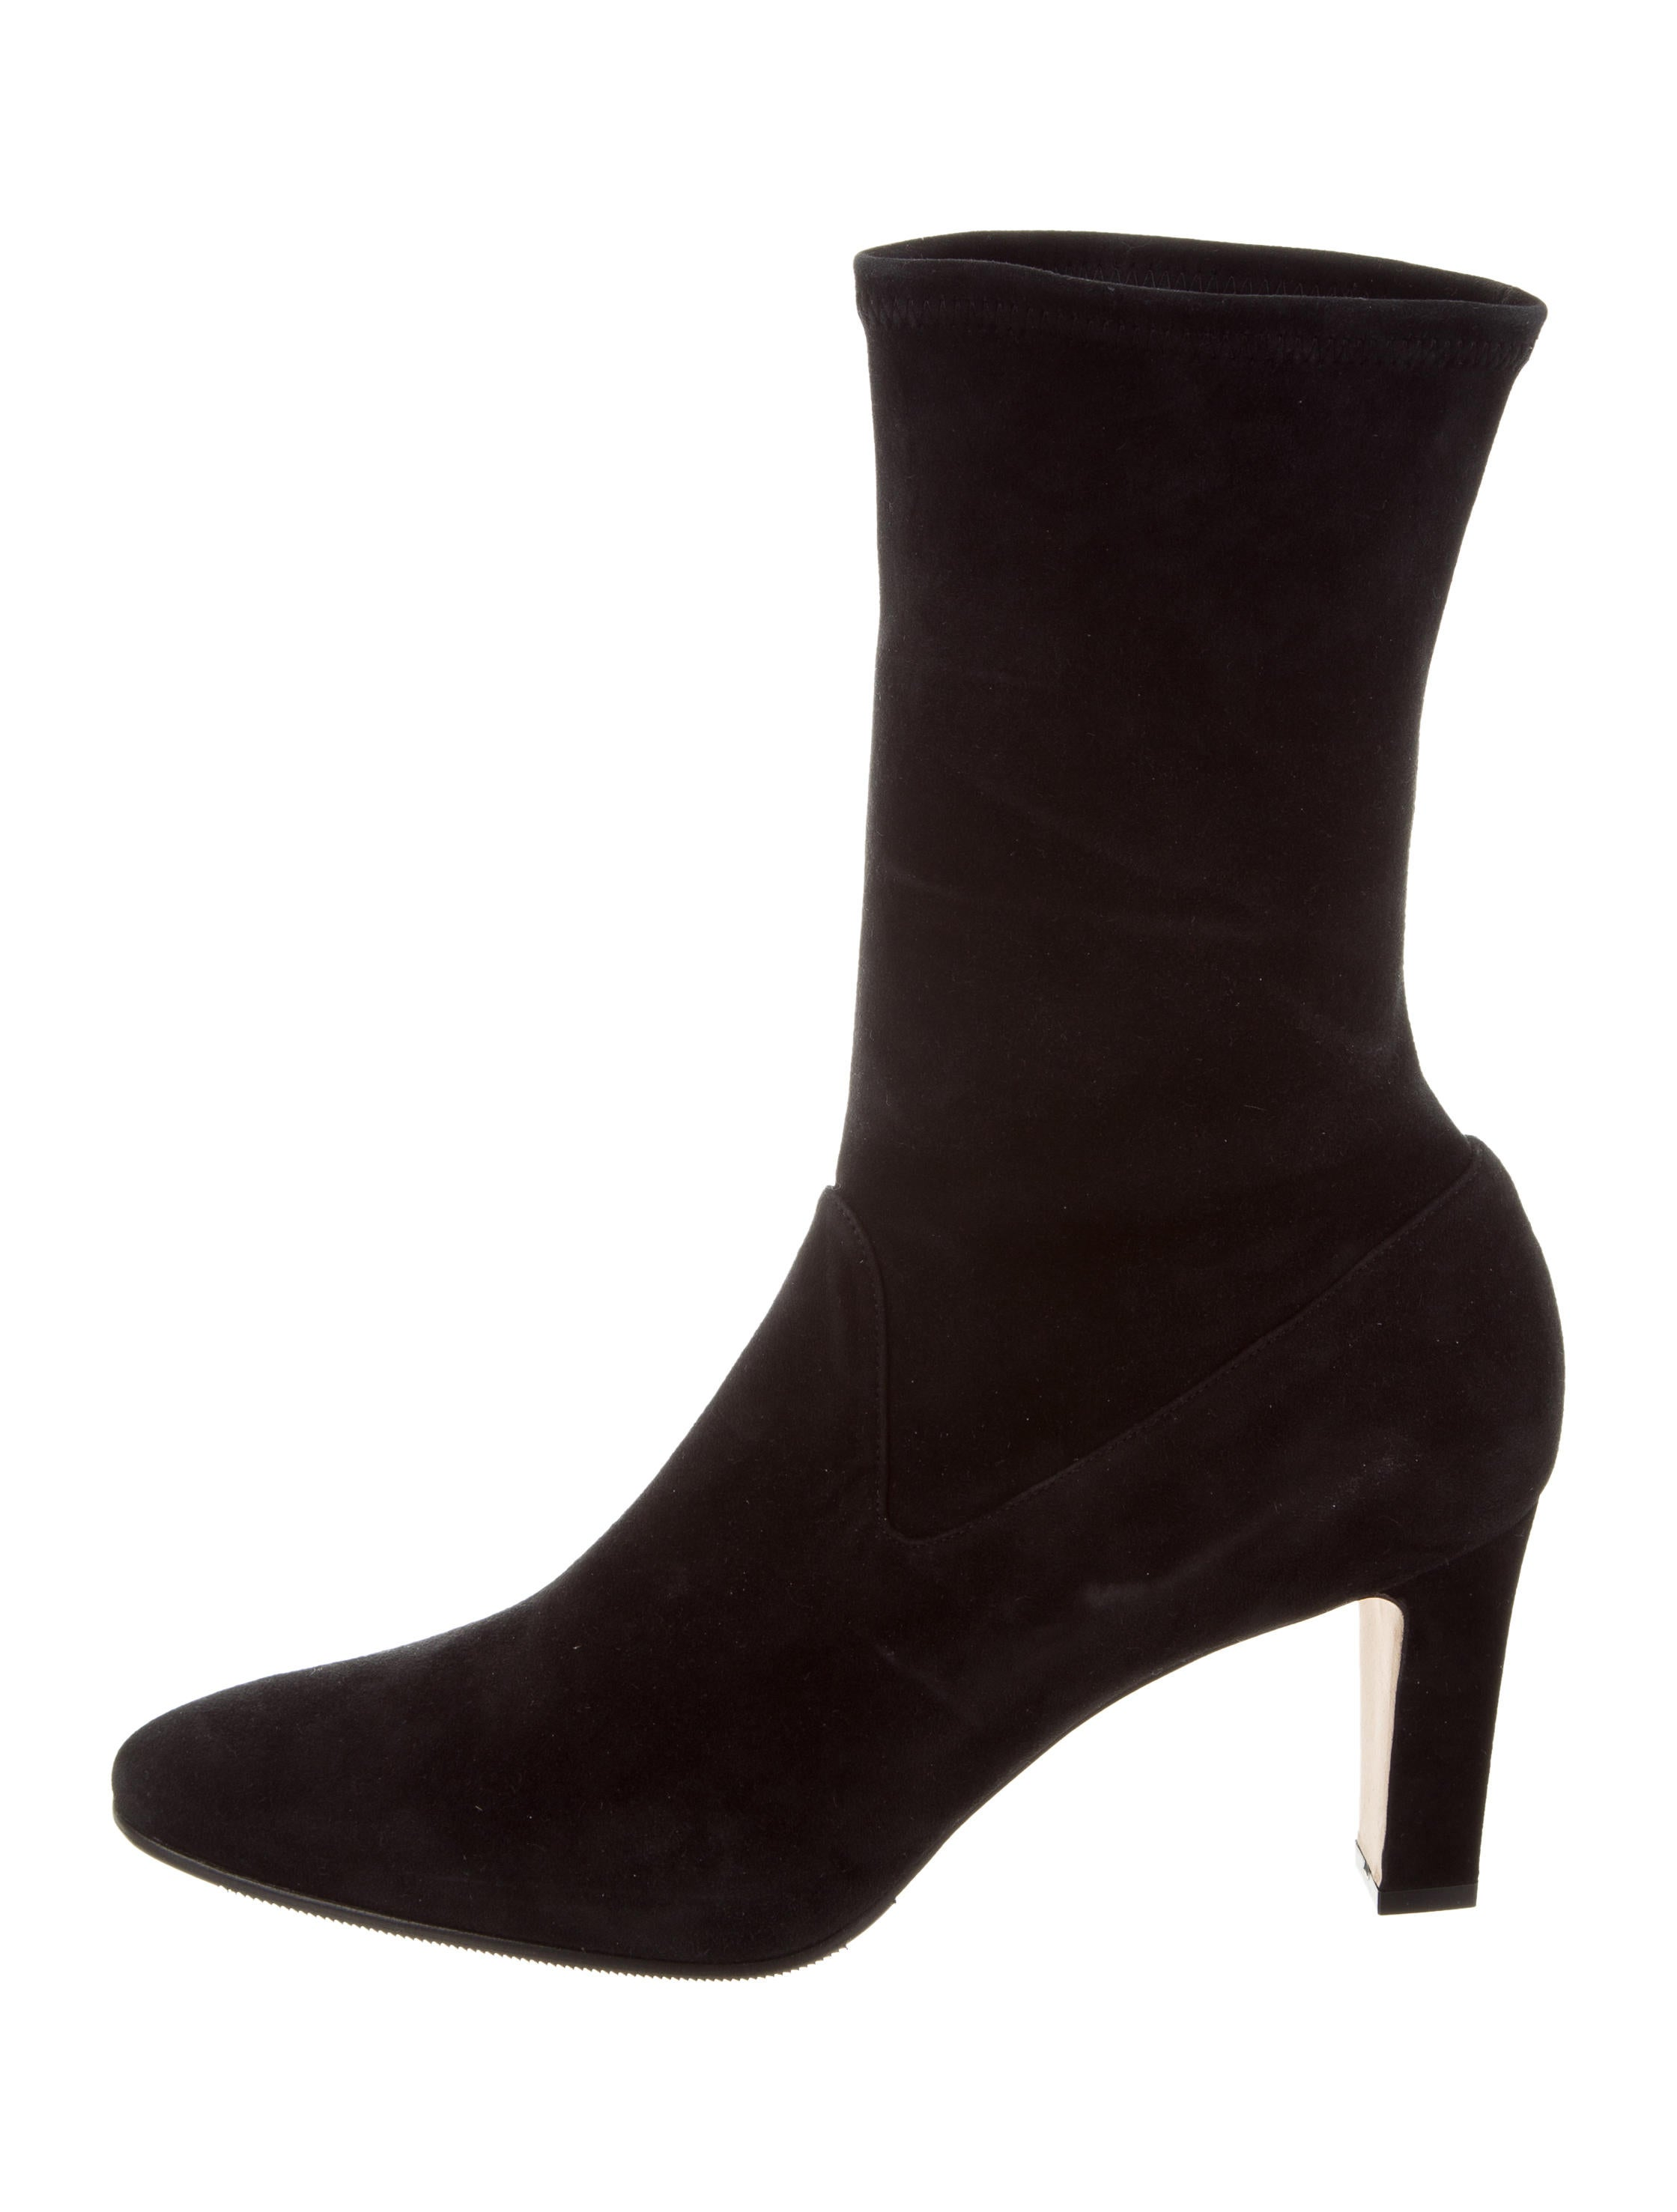 Manolo Blahnik Suede Pascal Ankle Boots purchase cheap price outlet order online k3ii9